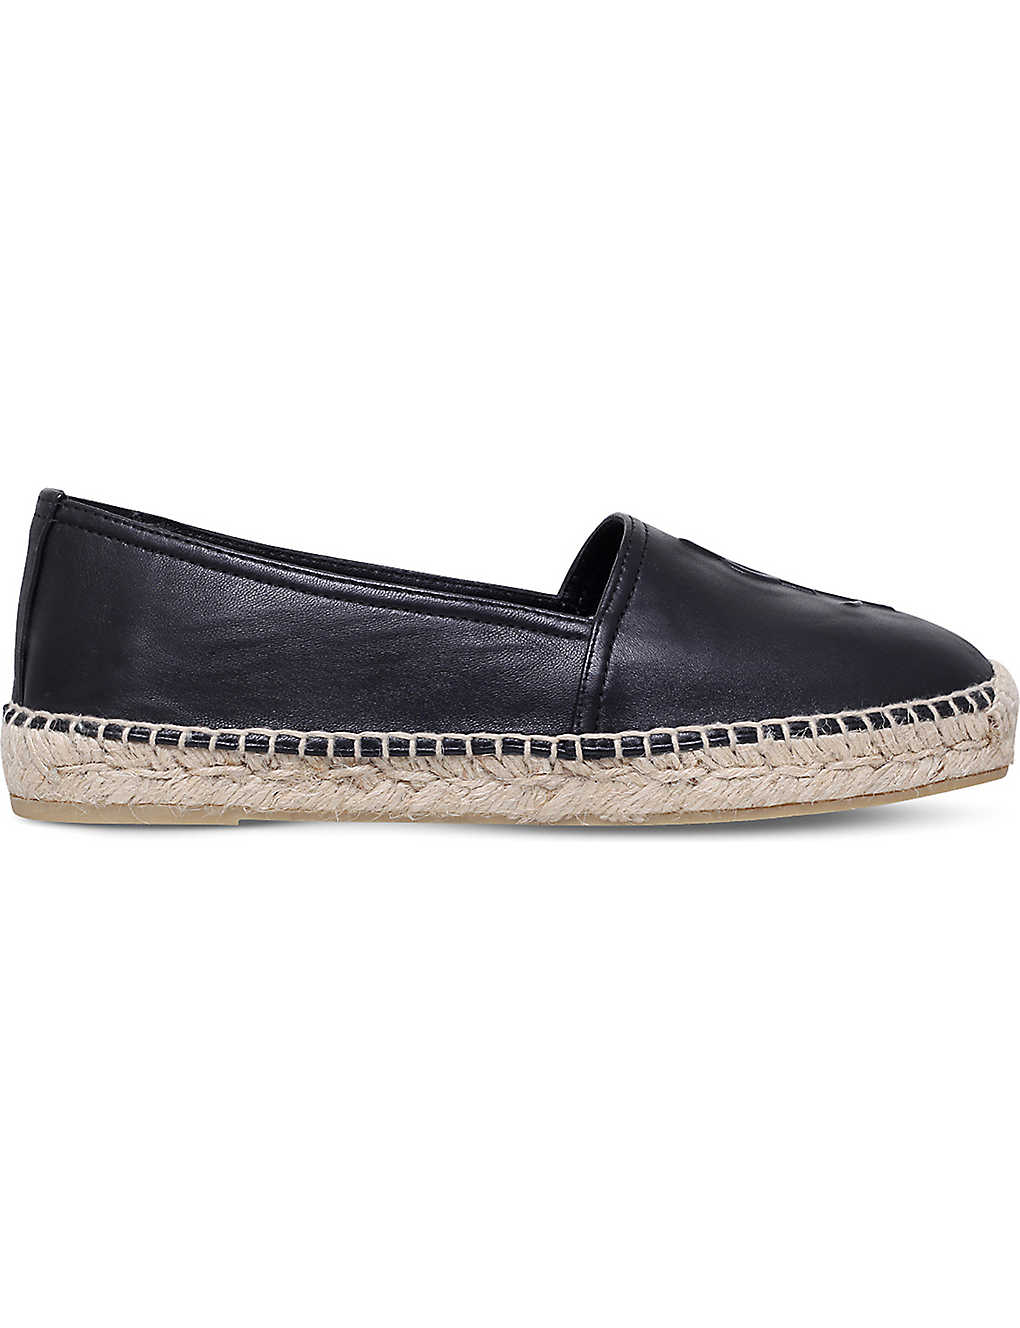 fc21ed4e07a SAINT LAURENT - Leather espadrilles | Selfridges.com